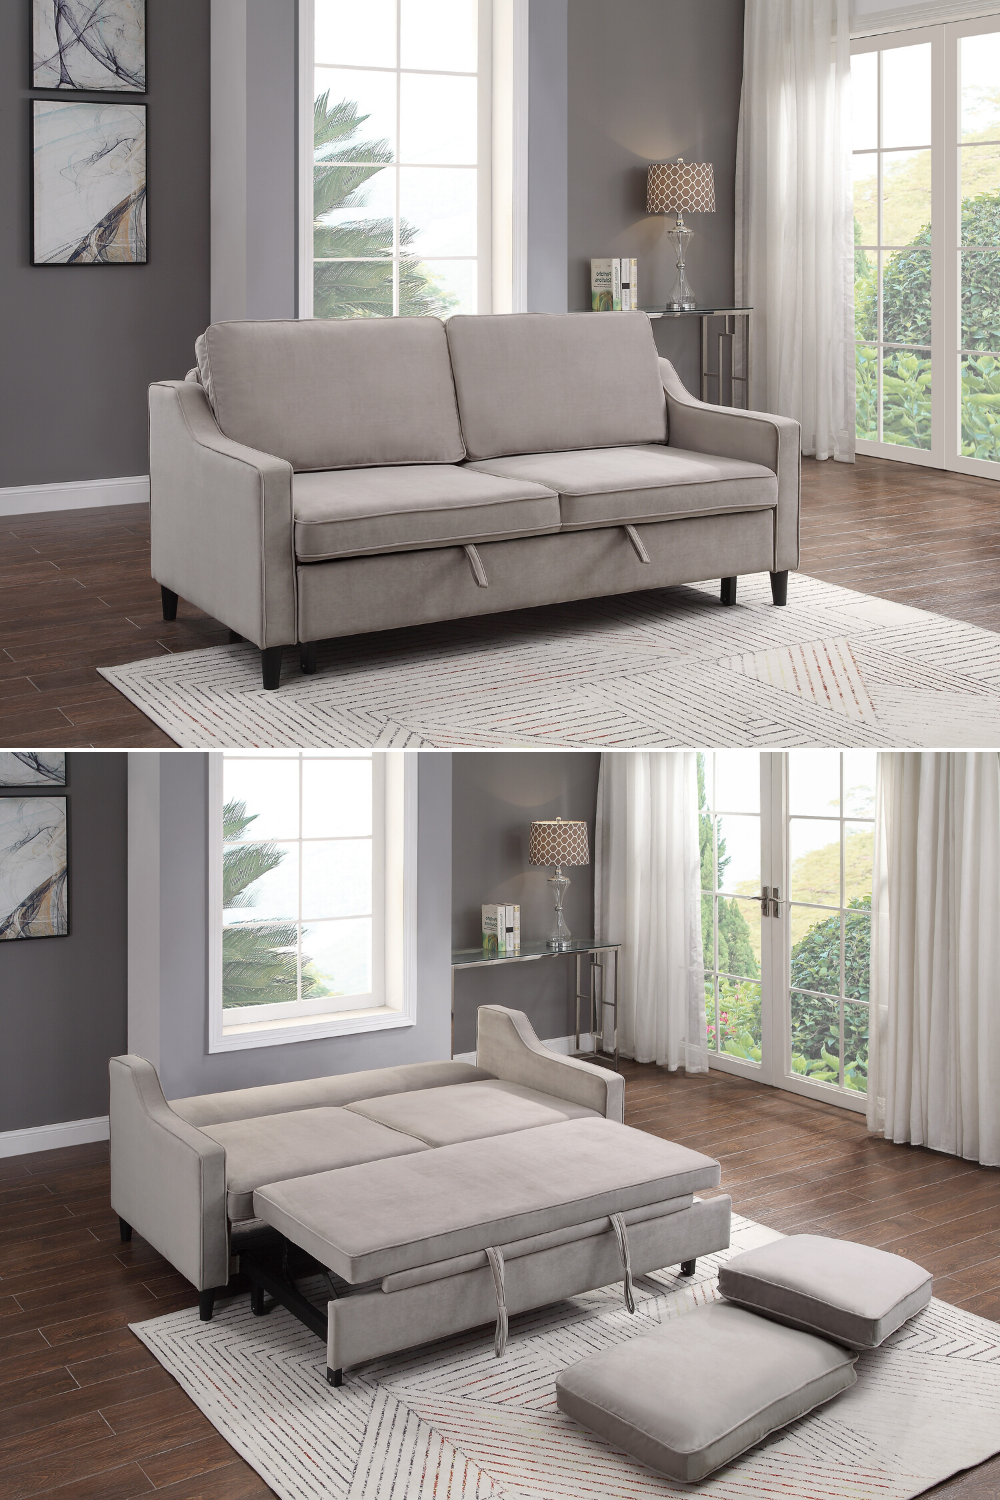 Dickinson Sofa With Pull Out Bed In 2020 Curtains Living Room